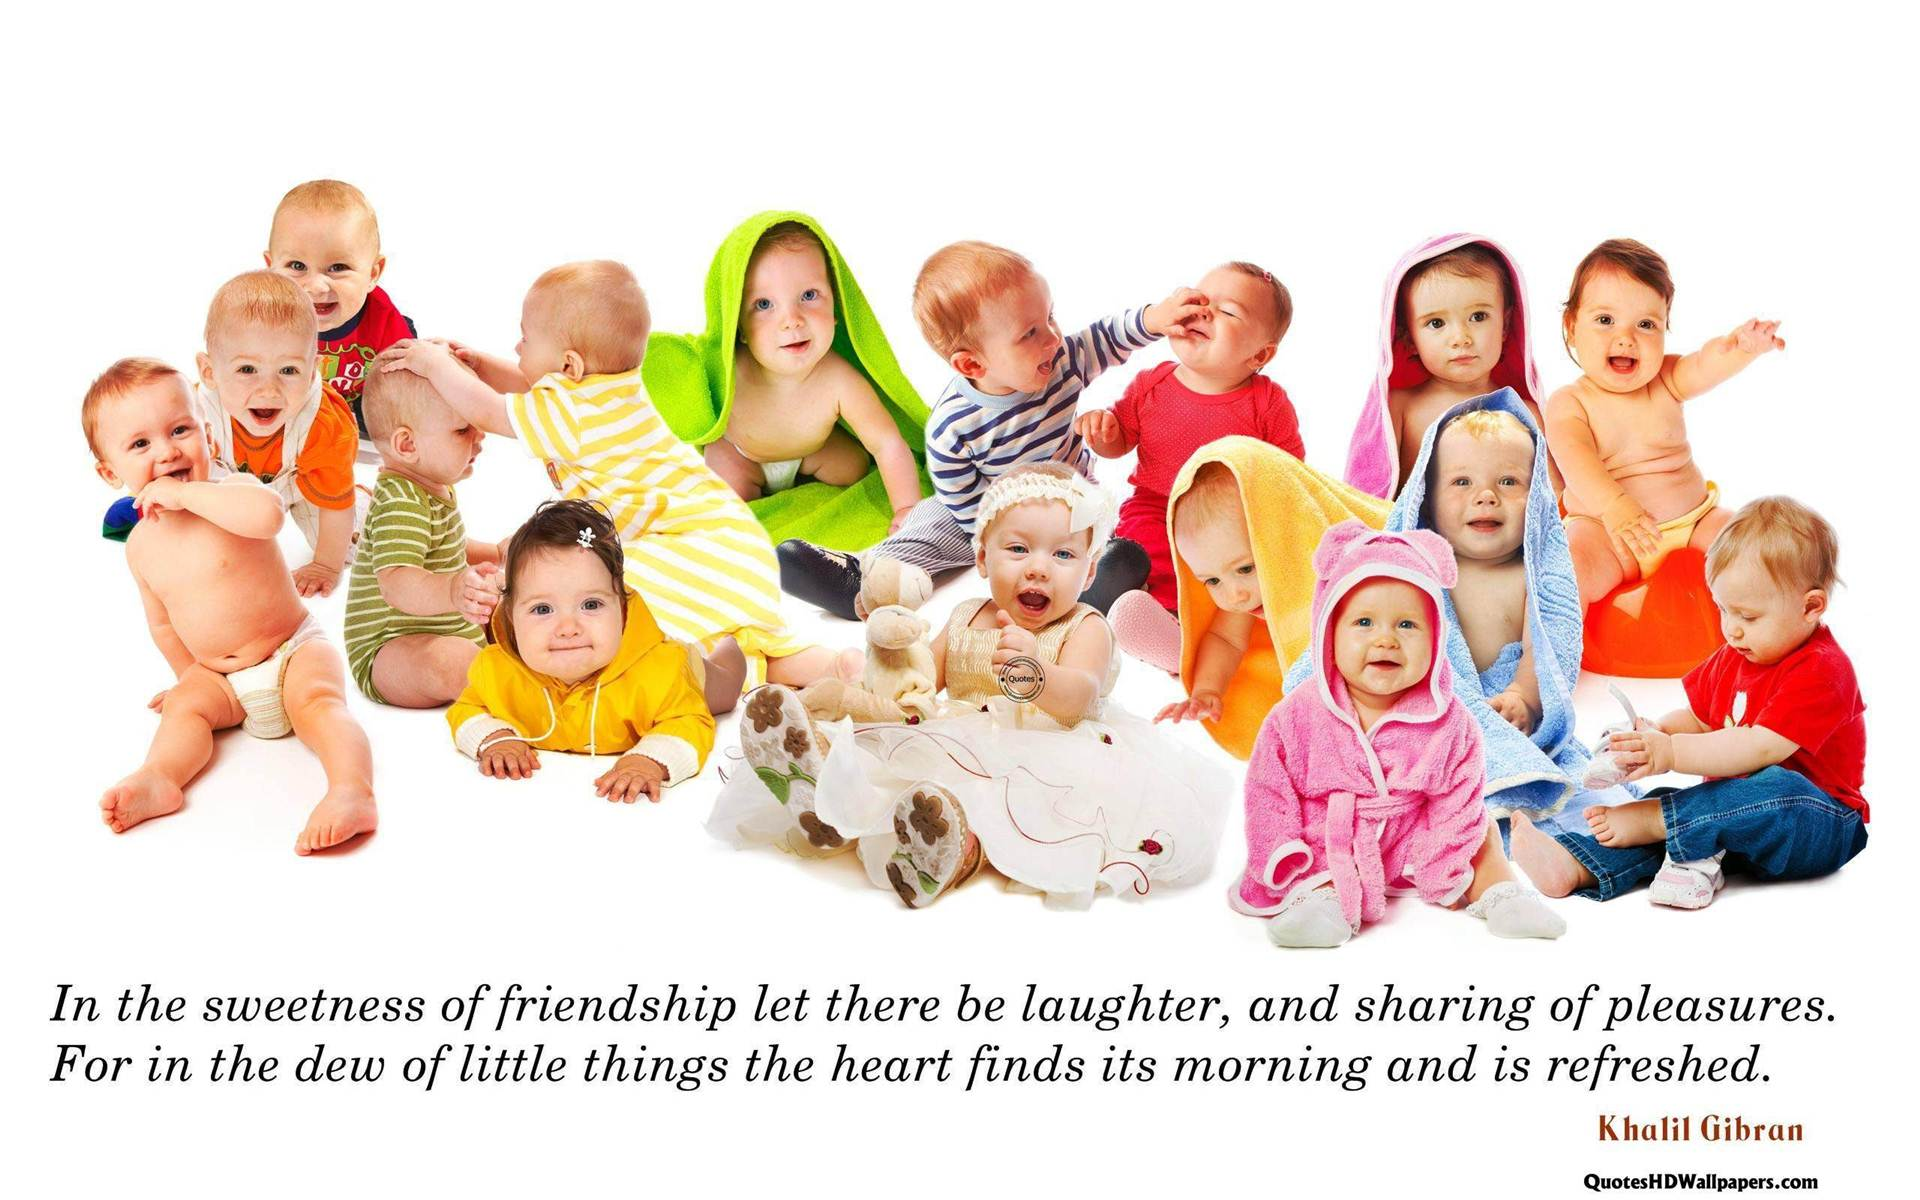 Friendship Day Quotes For Friends Group : Laughter and friendship quotes quotesgram